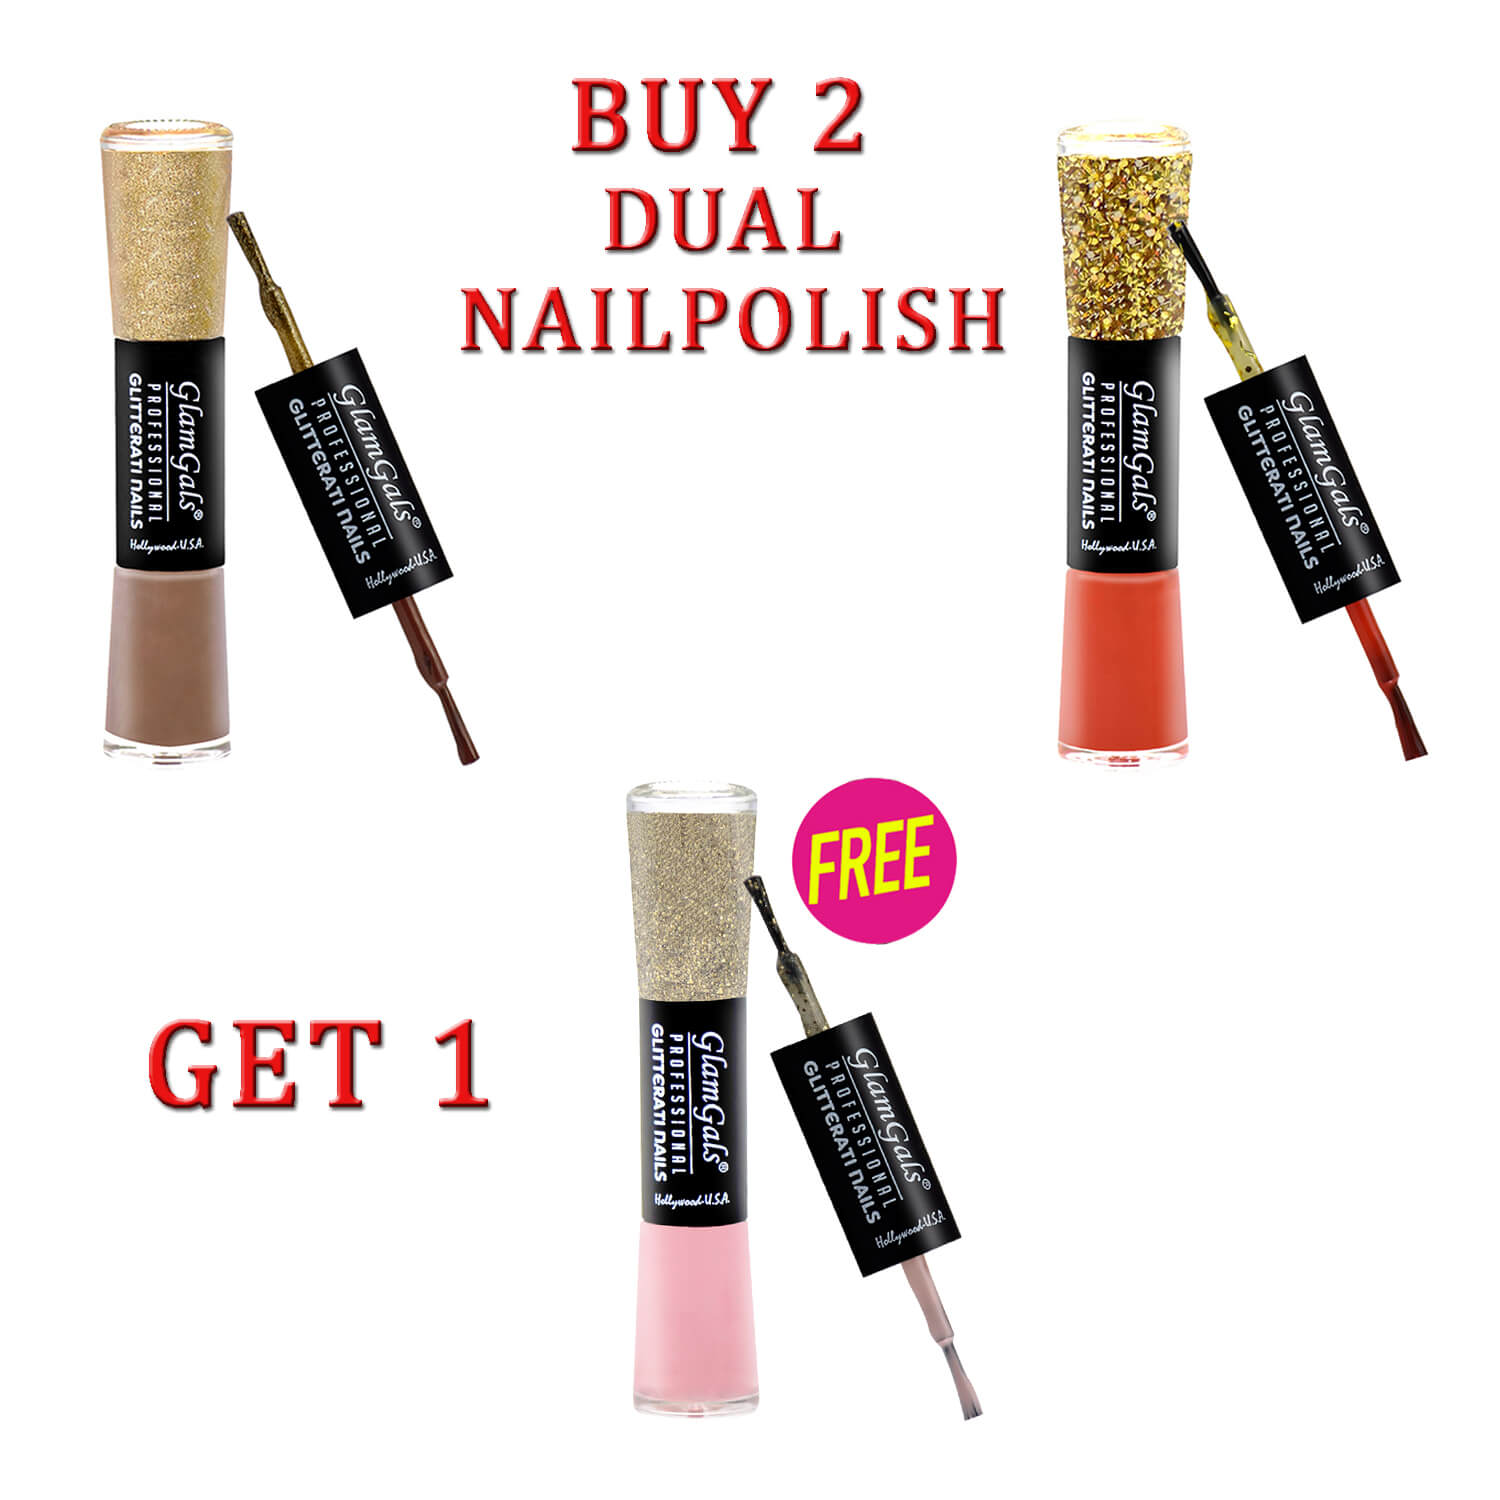 Buy 2 GlamGals Glossy Finished Glitterati Nail Polish & Get 1 Free